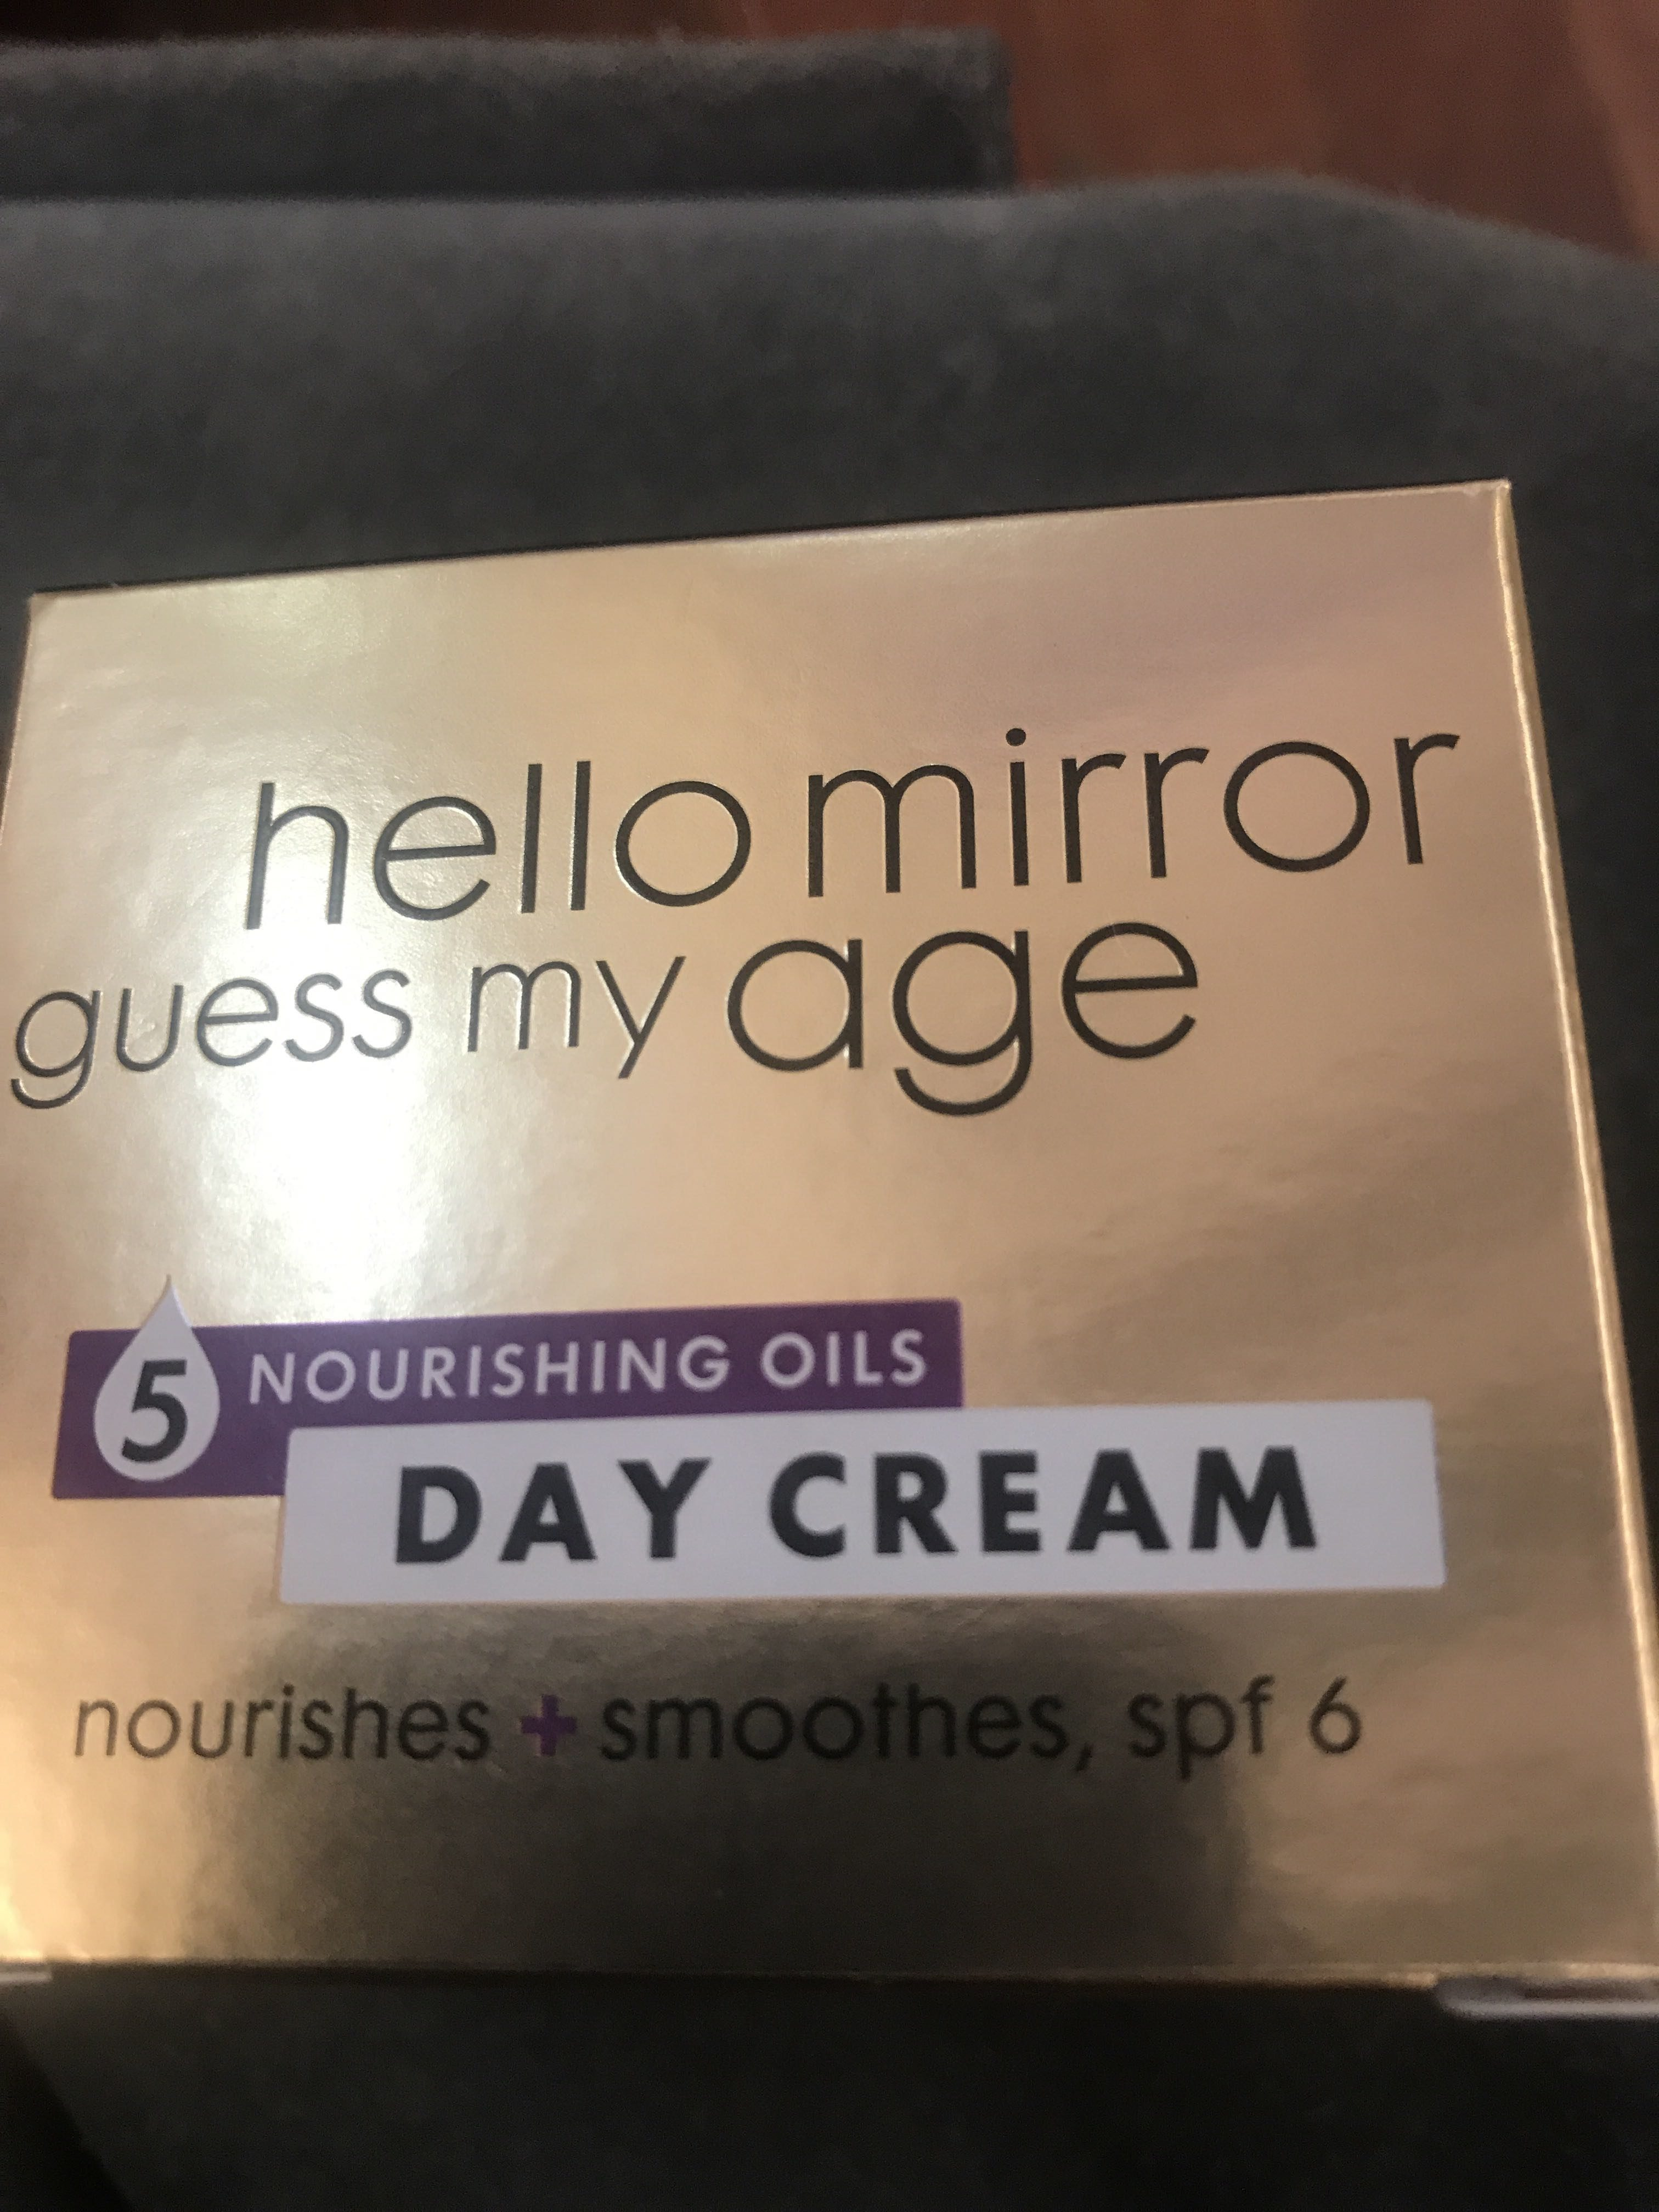 Hello Mirror guess my age - Product